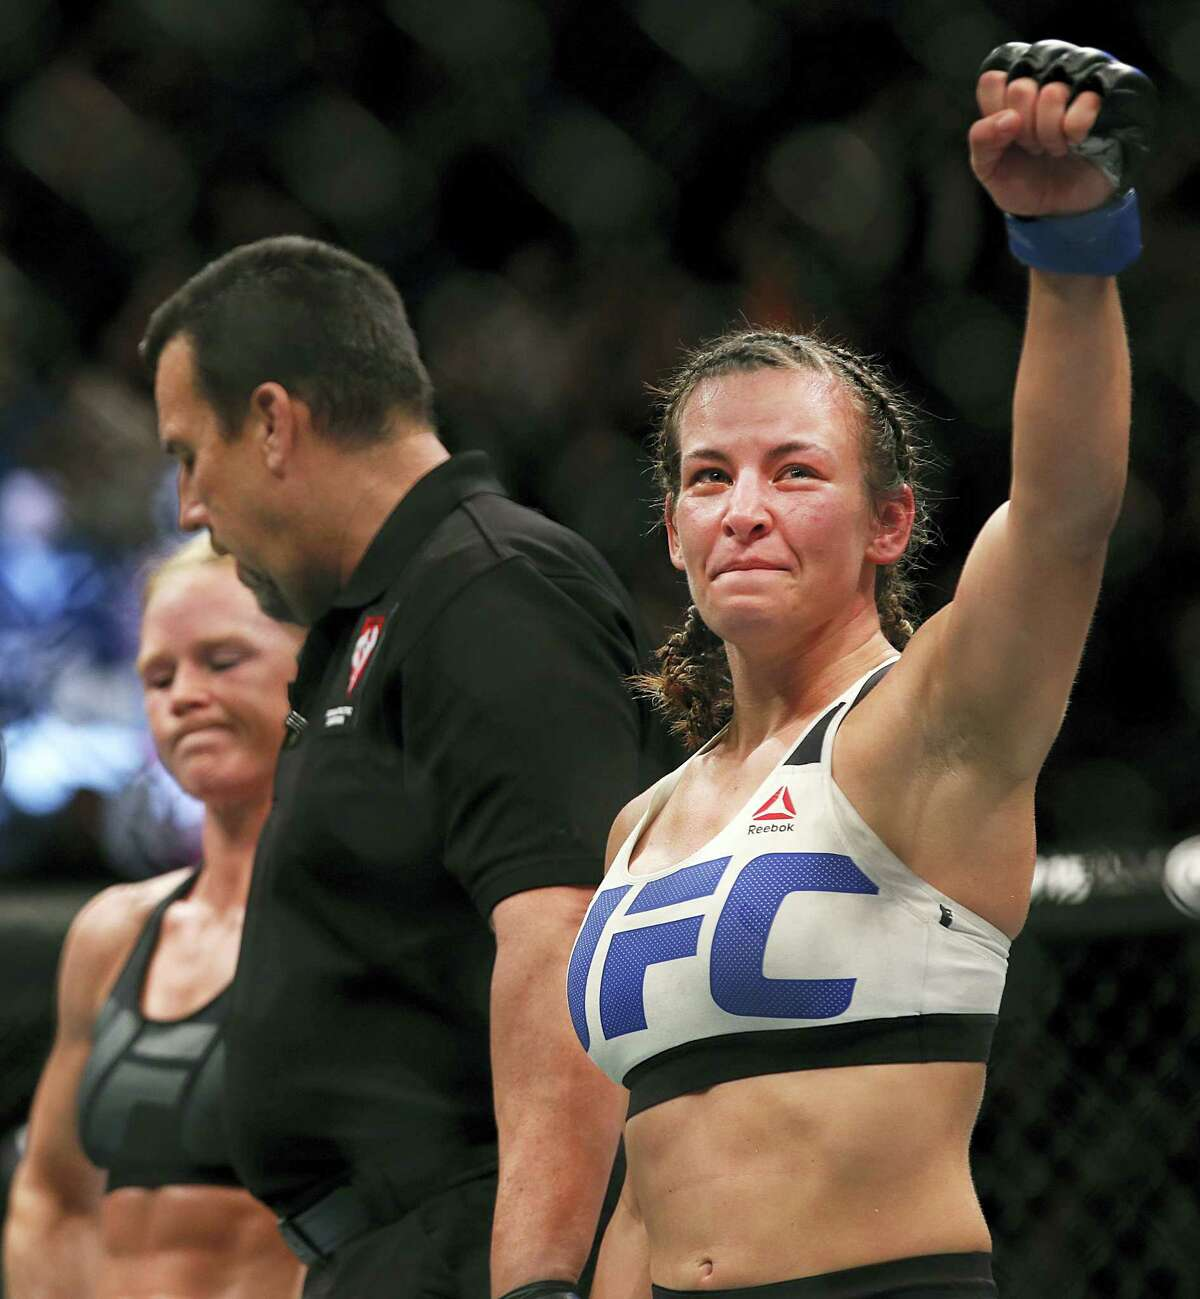 In this March 5, 2016 photo, Miesha Tate, right, celebrates her victory over Holly Holm in a UFC 196 women's bantamweight mixed martial arts bout in Las Vegas.